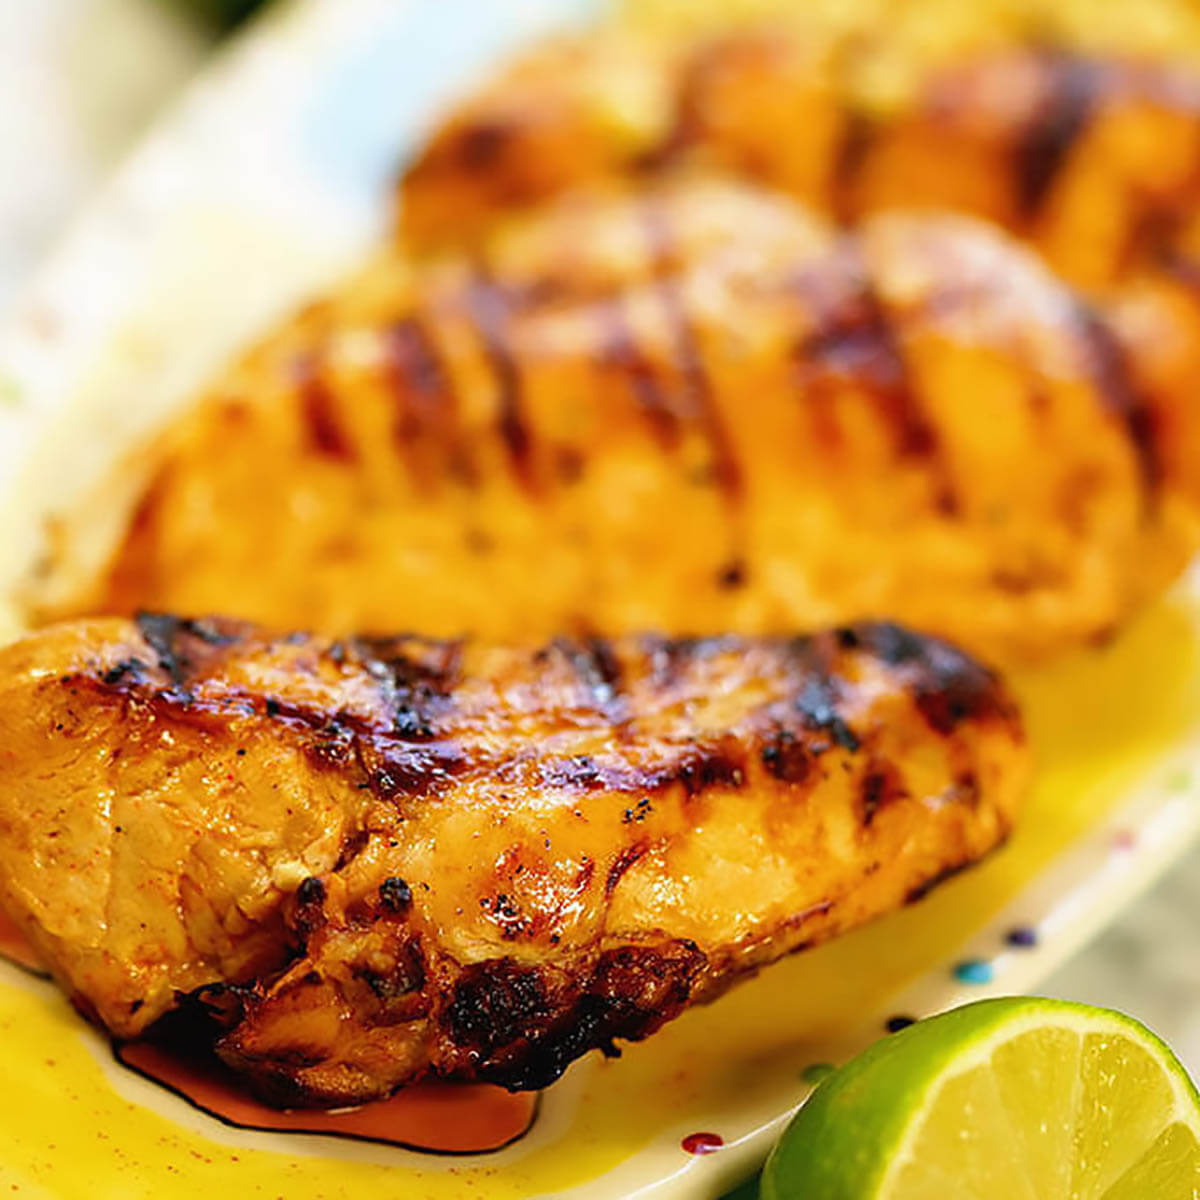 Grilled Chili Lime Chicken on platter served with a wedge of lime.